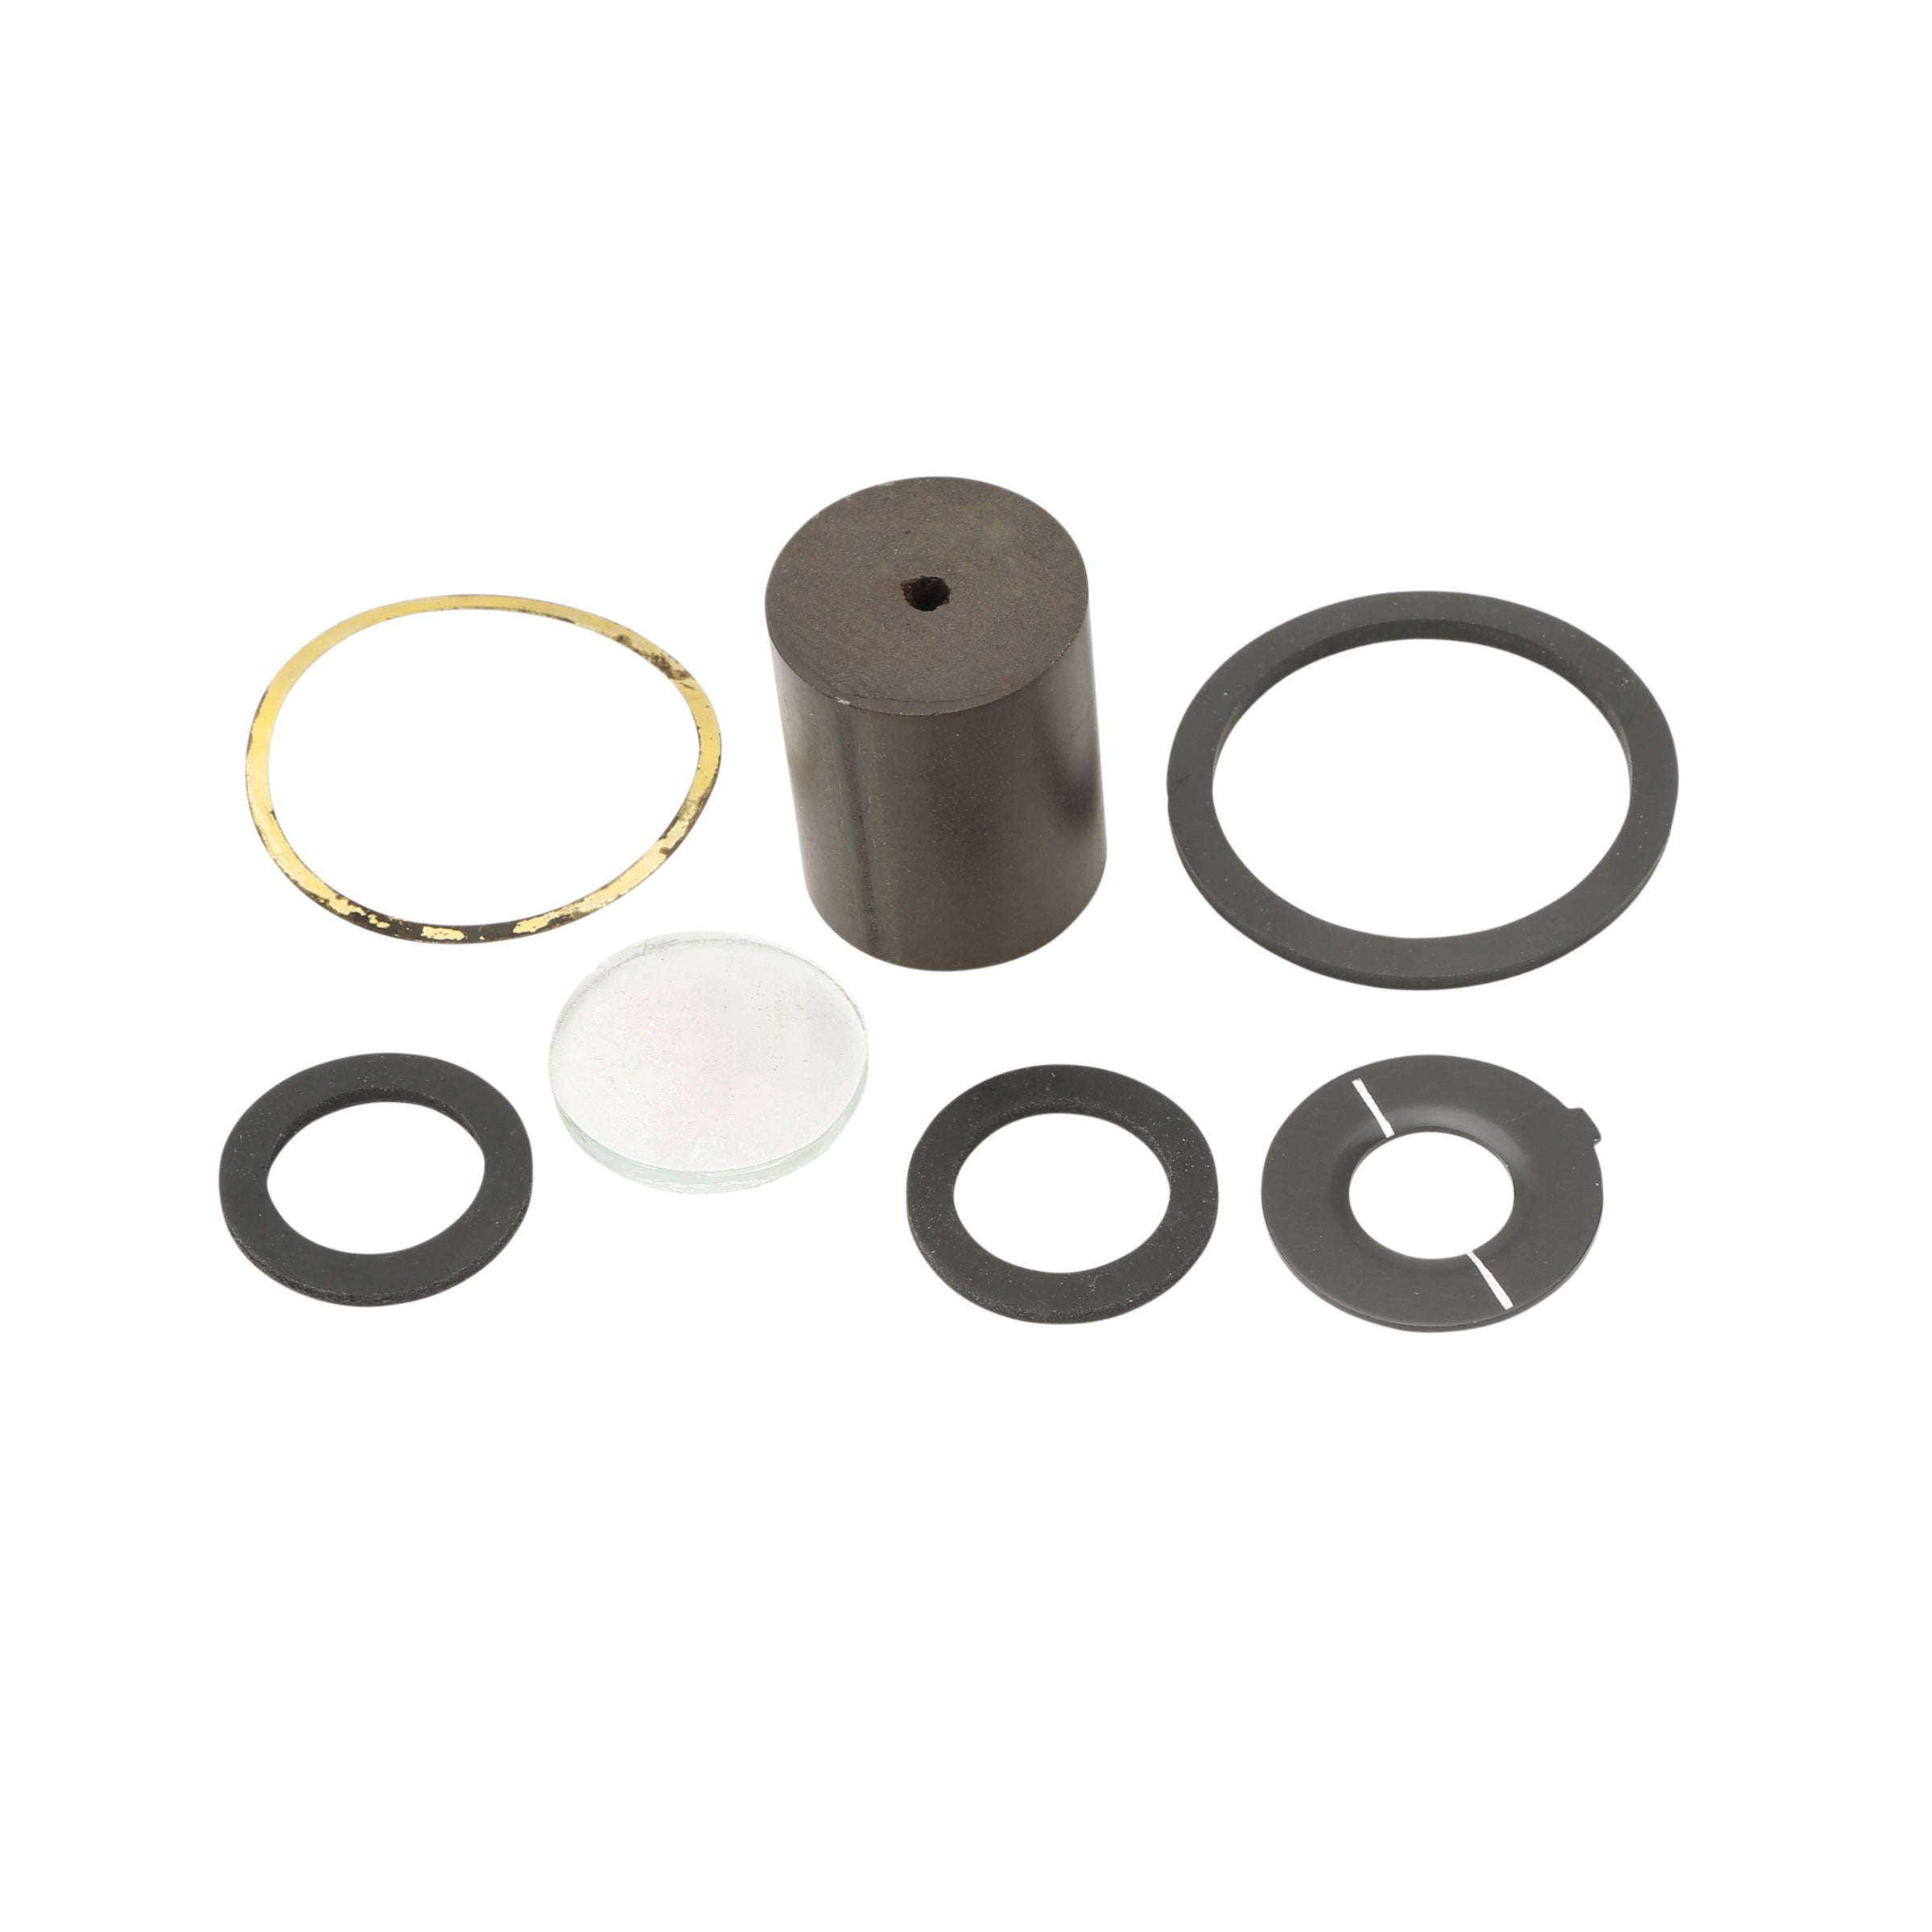 Gas Gauge Master Rebuild Kit (Neoprene) • 1928-31 Model A Ford